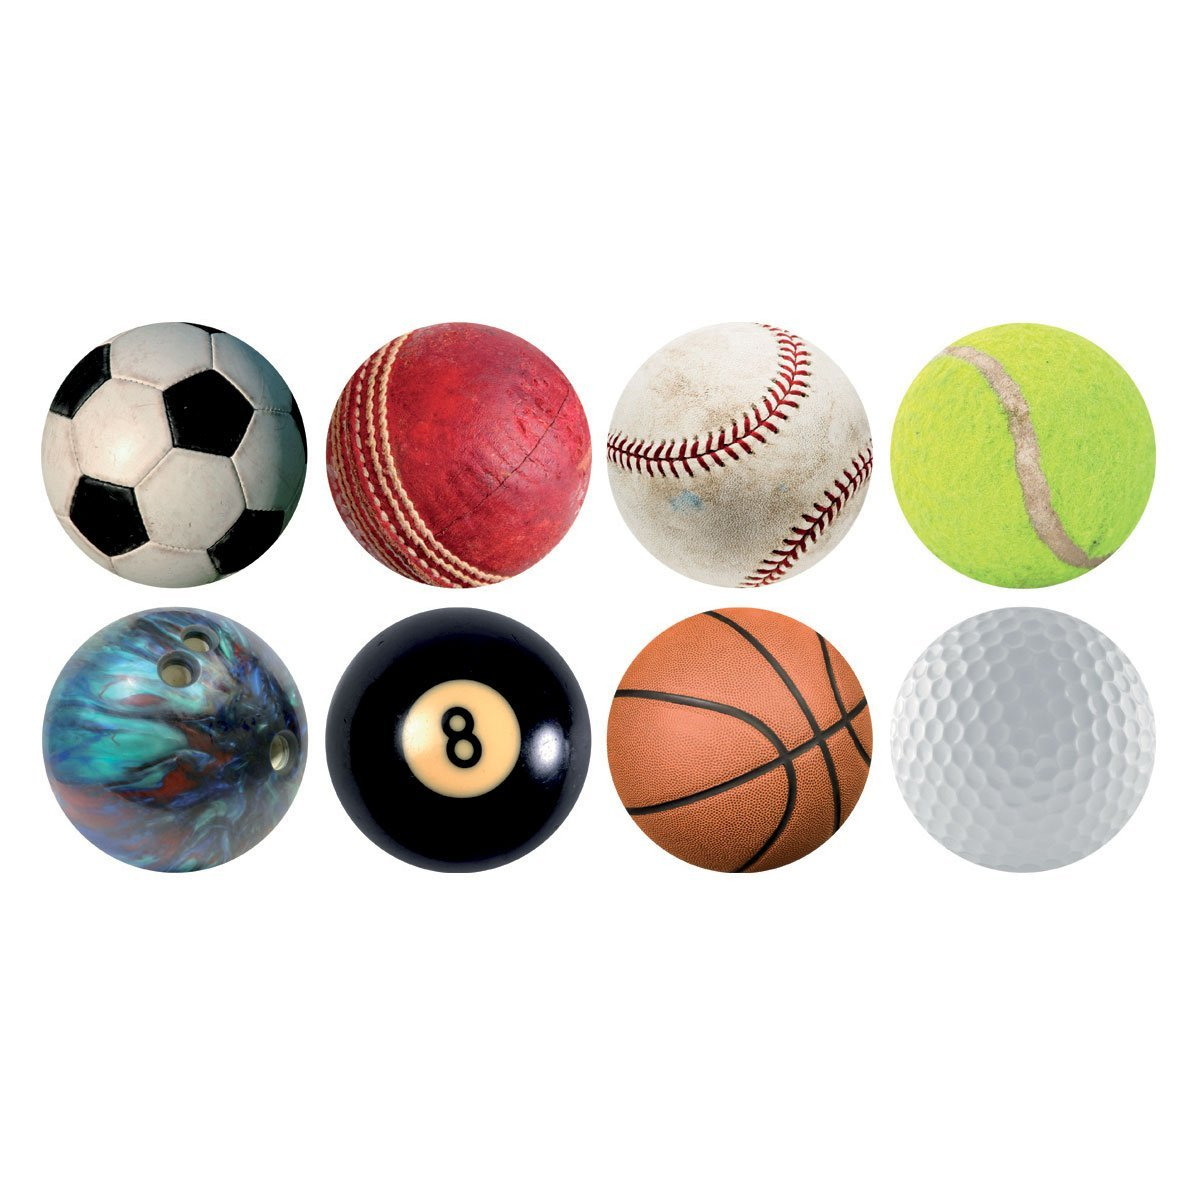 2 moreover 106901 Floorball Stick And Other Sport Vectors in addition Stretches For Lower Back Pain besides Imagenes De Archivo Pelotas De Tenis Image18901634 likewise Red Texure Pattern. on tennis ball pattern